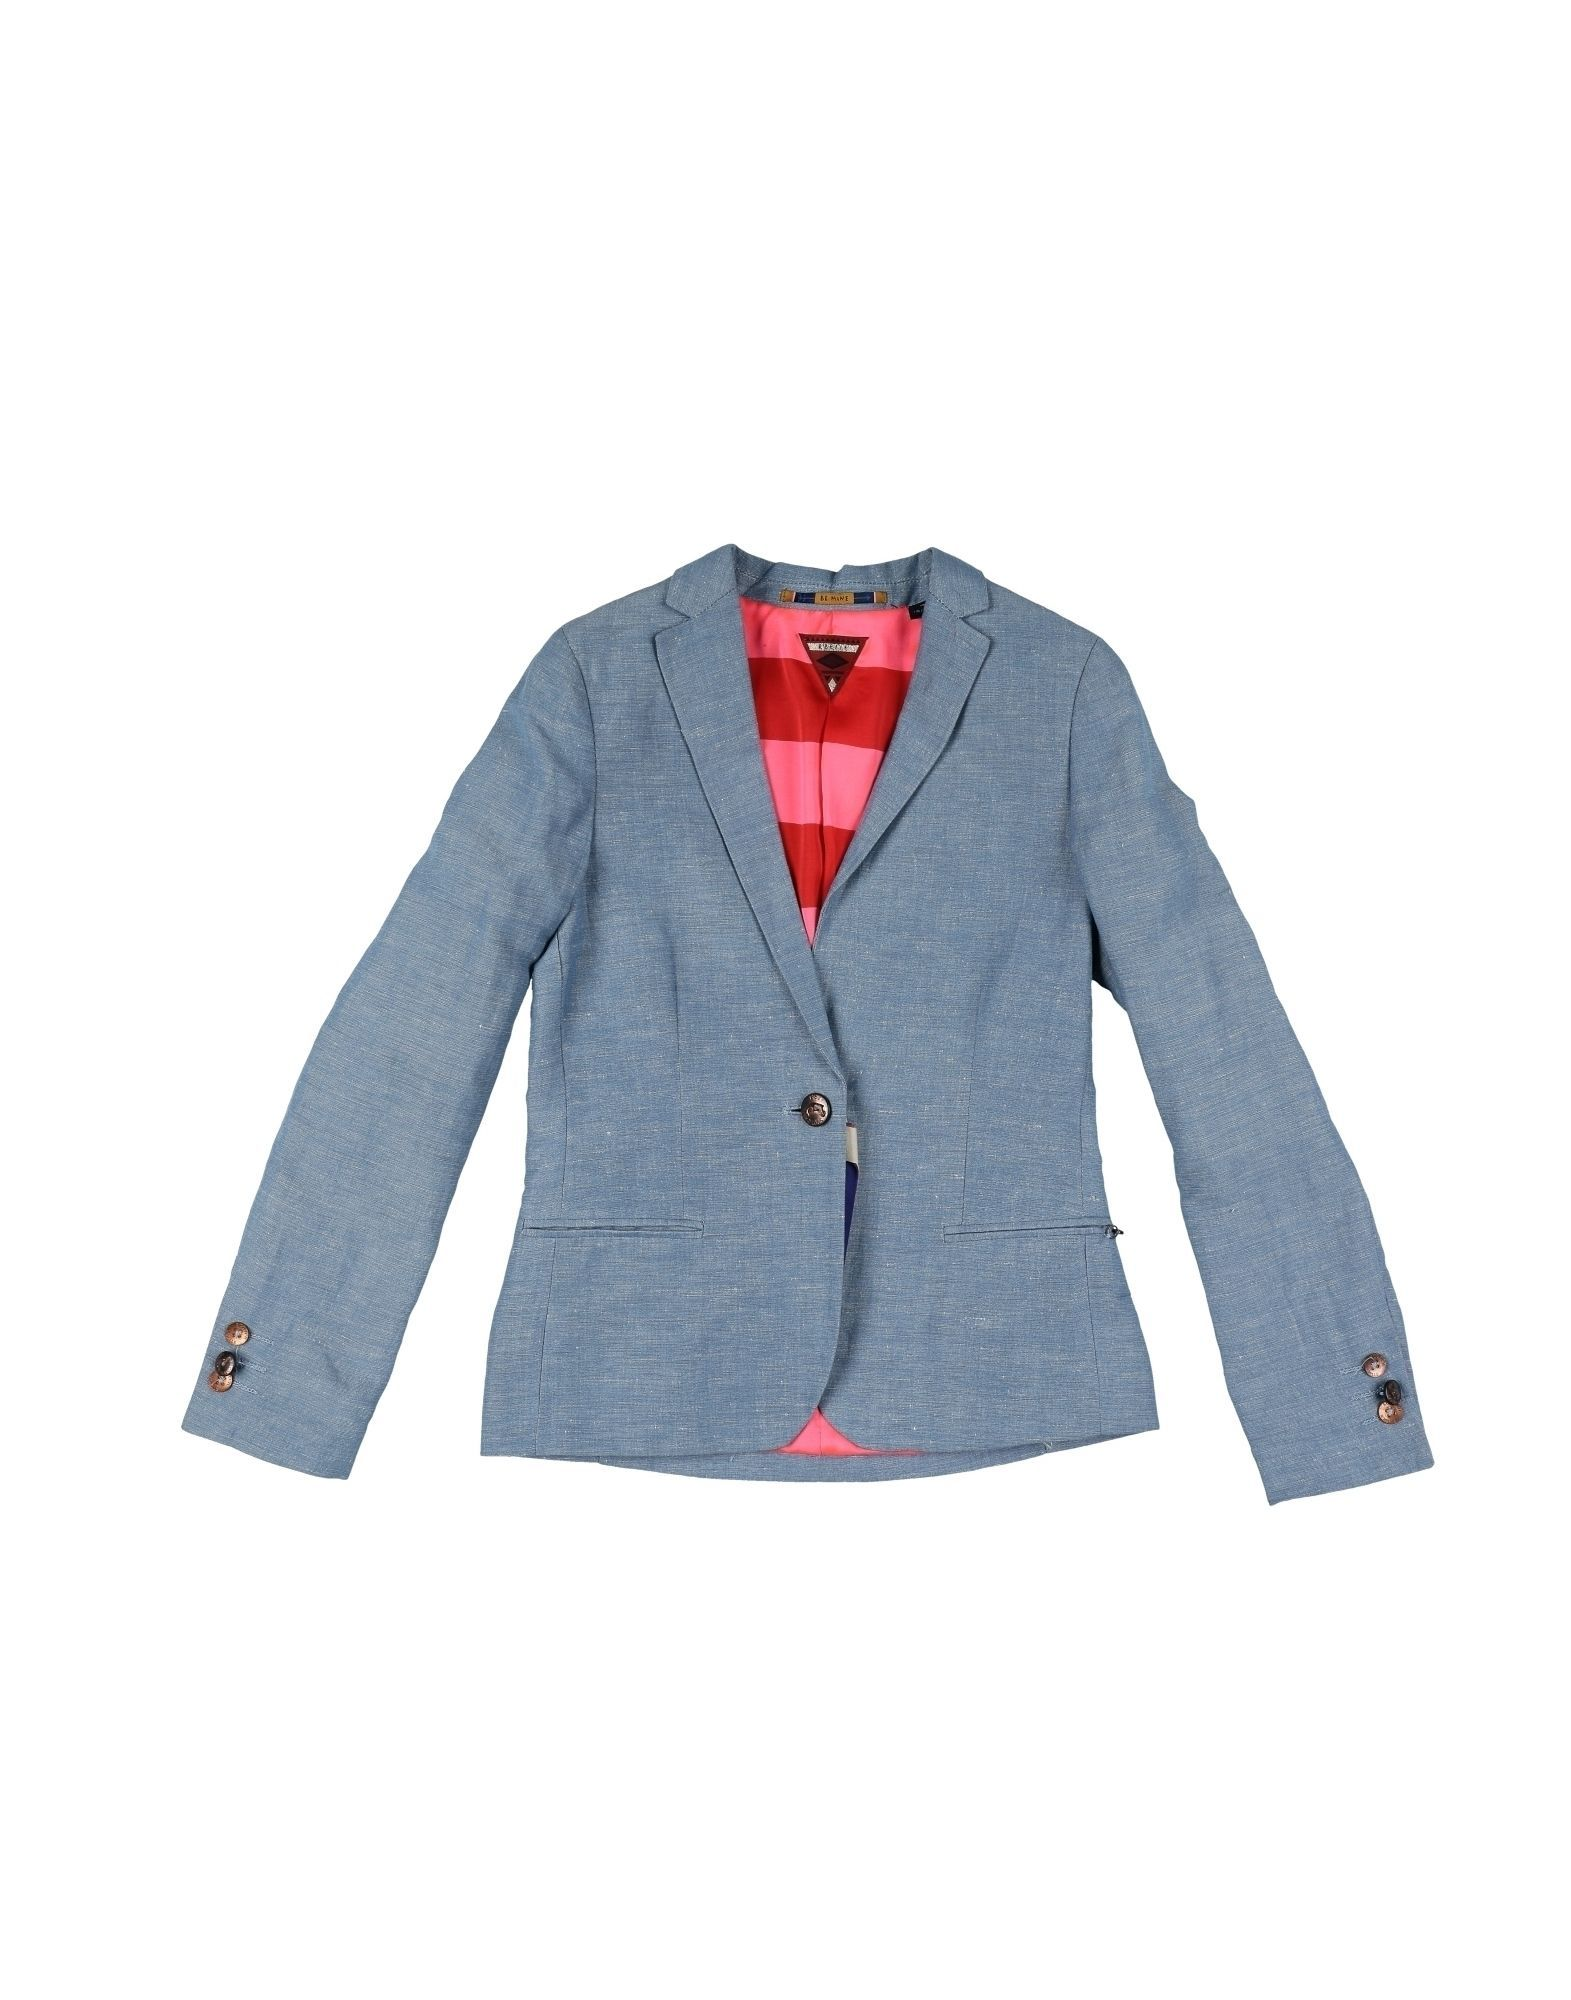 SUITS AND JACKETS Scotch R'Belle Blue Girl Linen